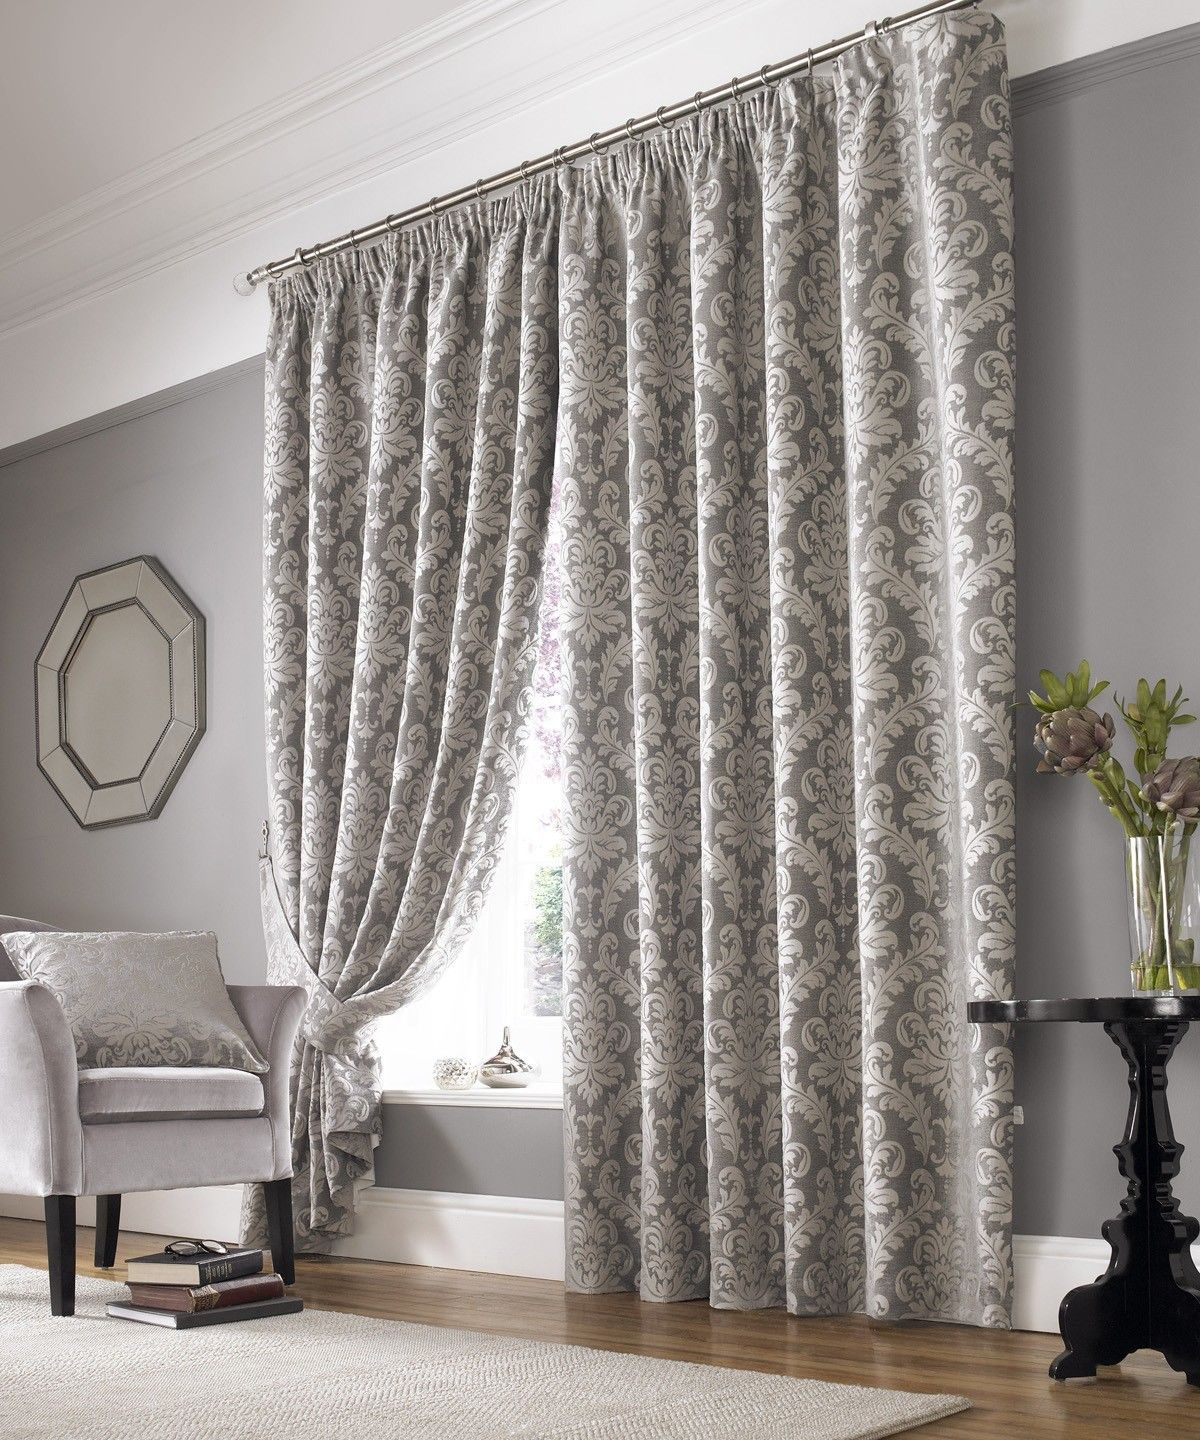 Lille Ready Made Lined Curtains | Renovating ideas | Pinterest ...